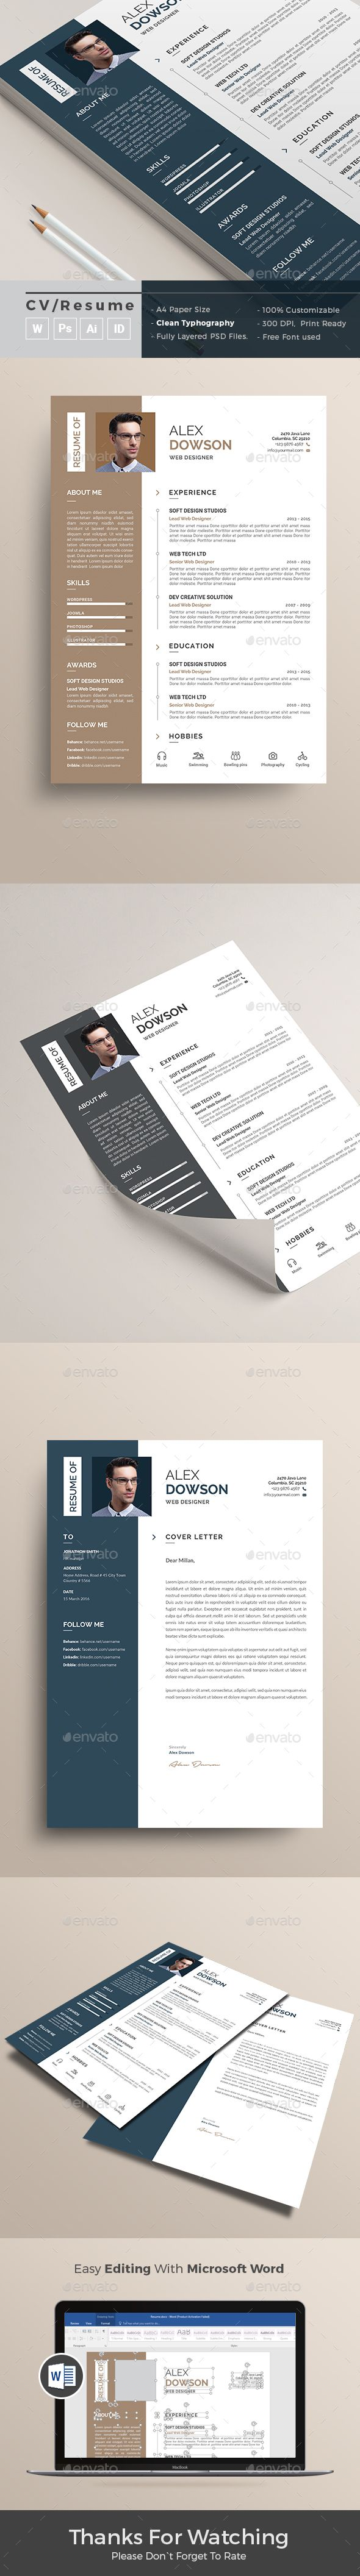 Resume by themedevisers Resume Word Template / CV Template with super clean and modern look. Clean Resume Template page designs are easy to use and custom